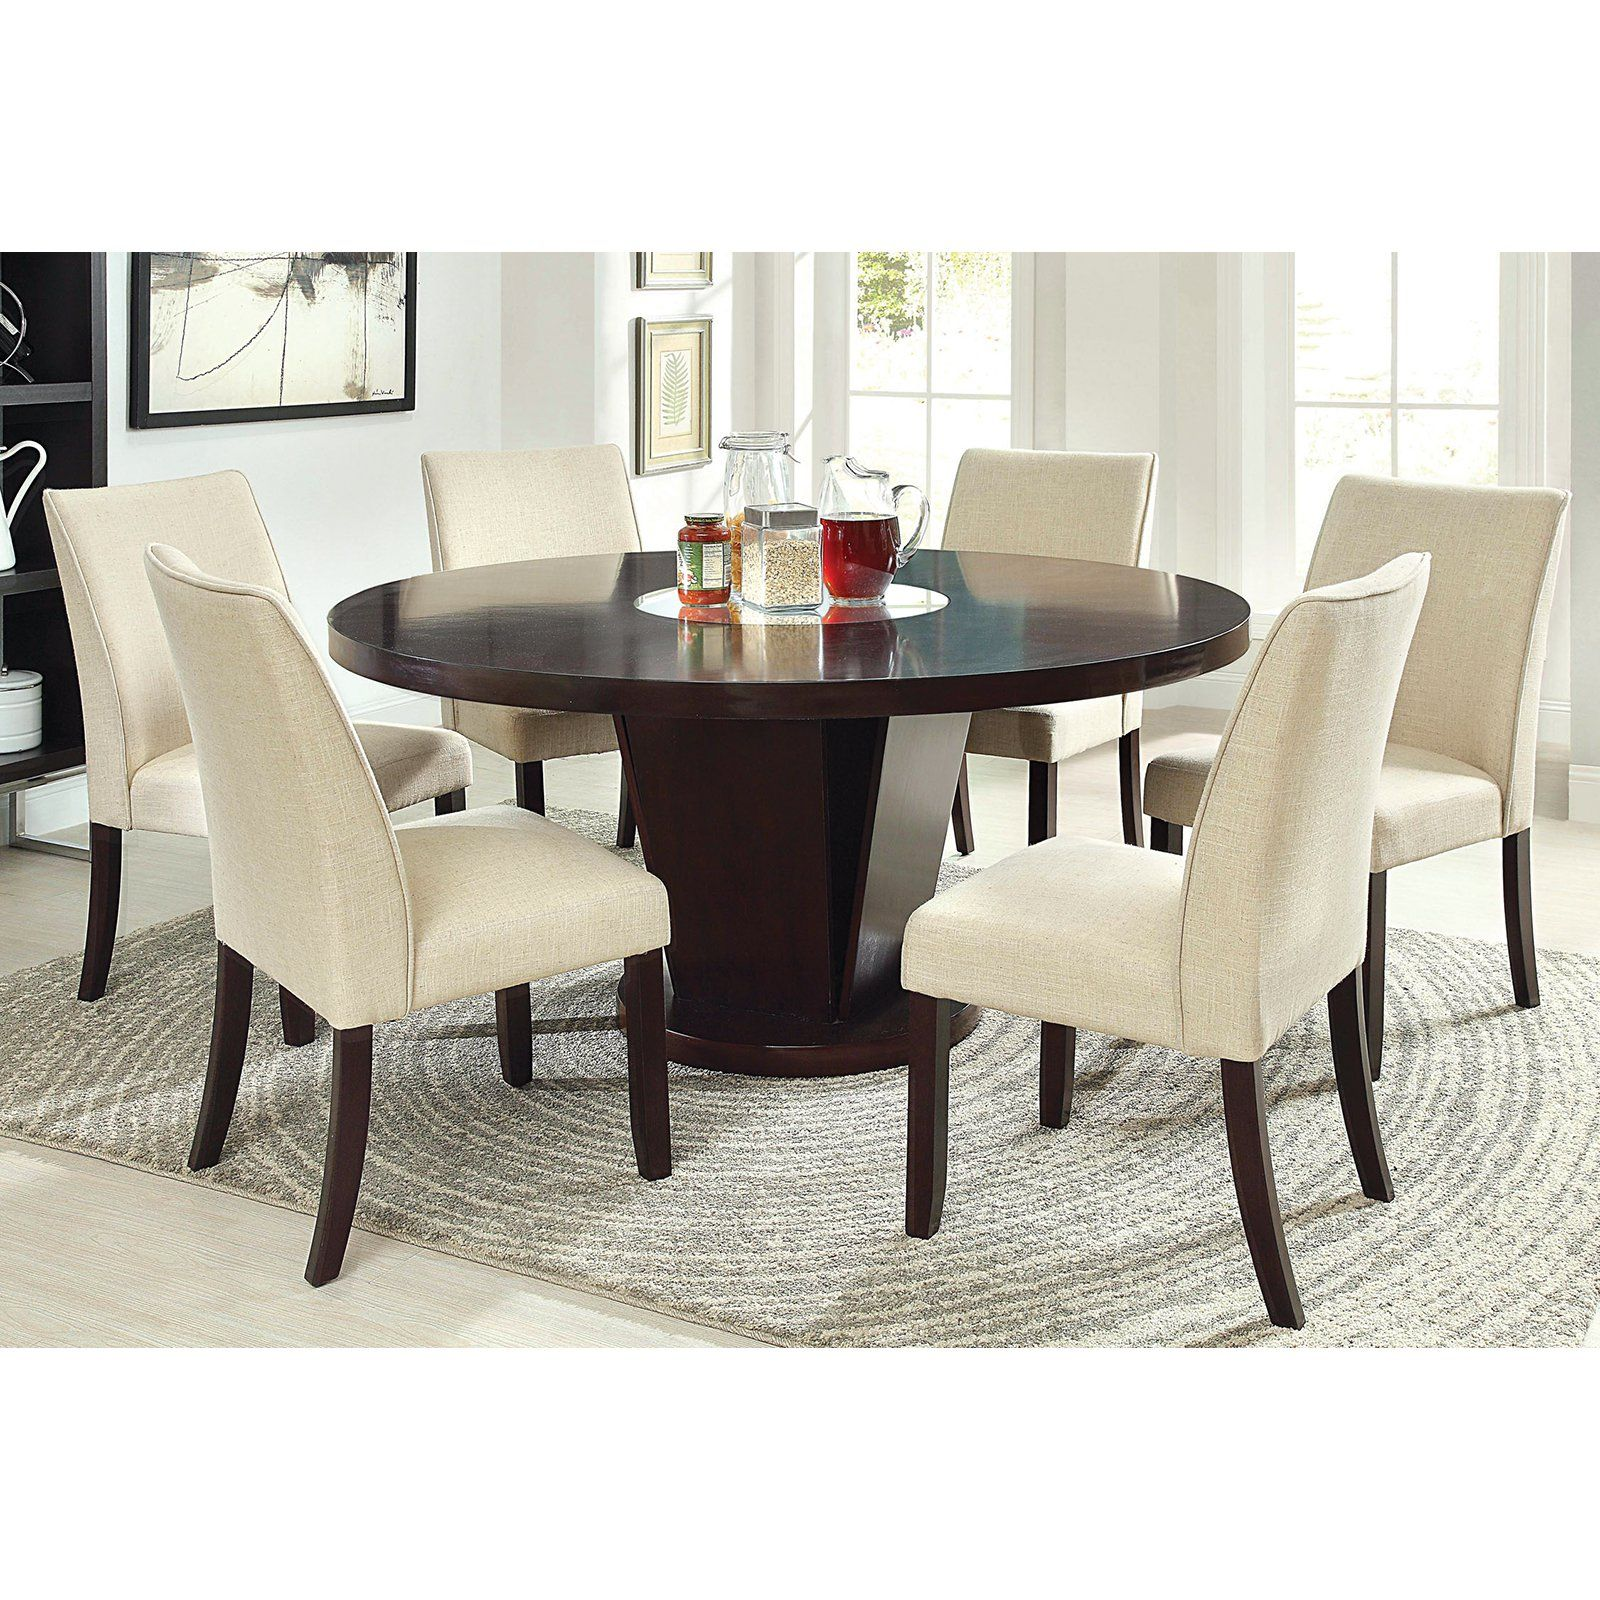 Furniture of America Vessice Round Pedestal Dining Table Espresso